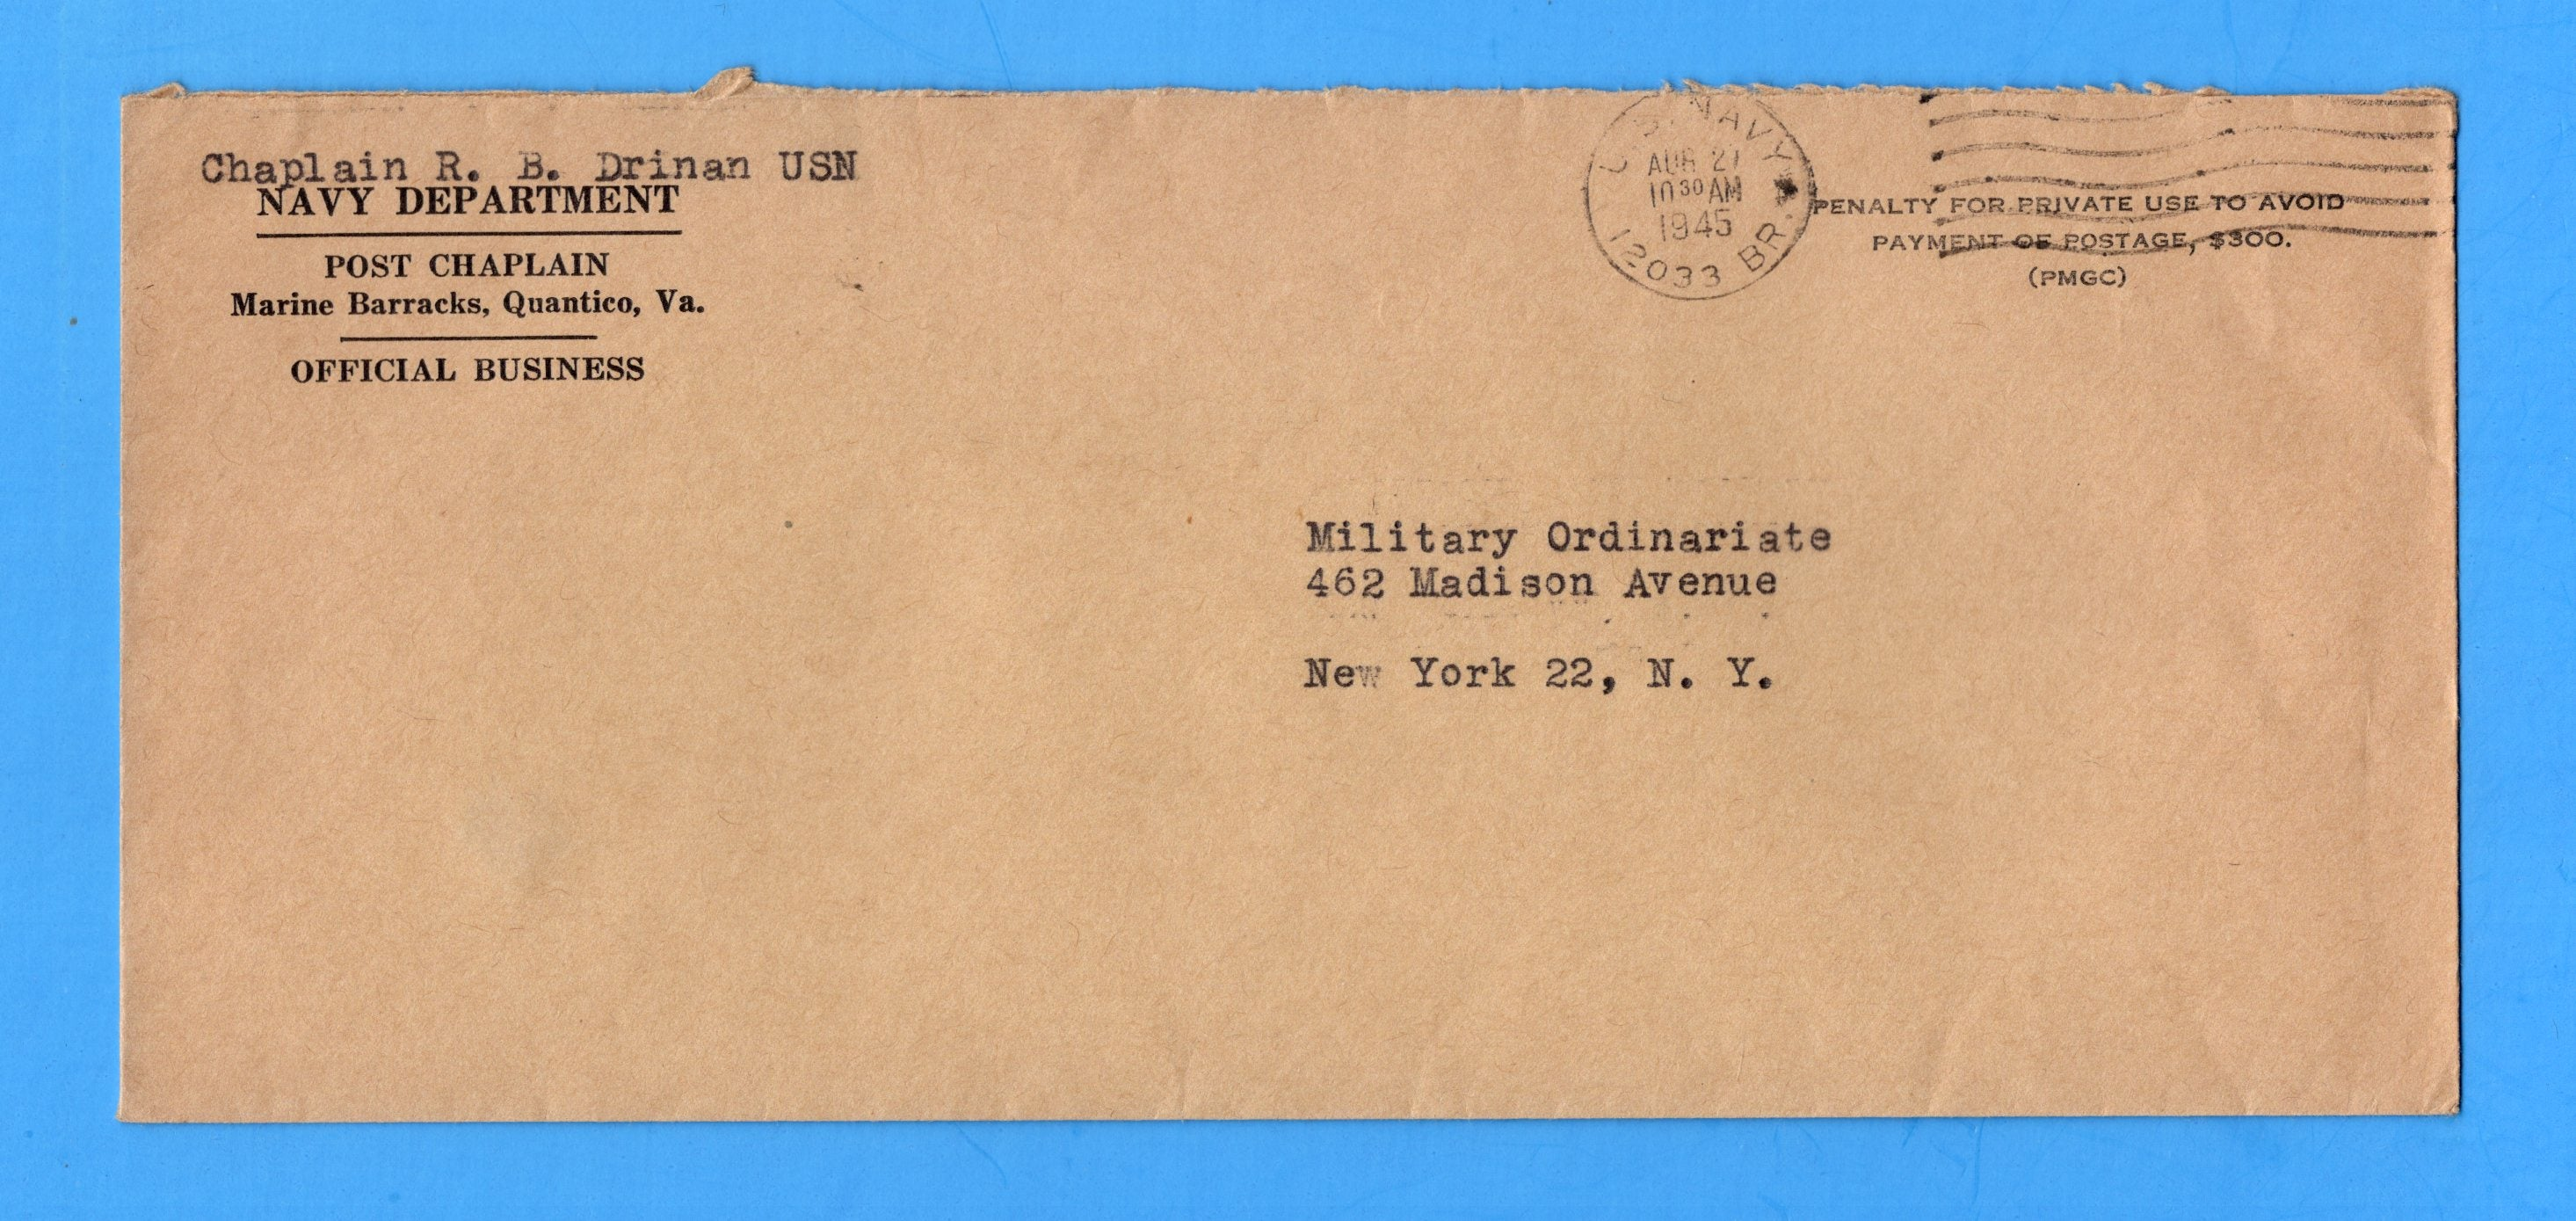 Marine Barracks, Quantico 12033 BR Post Chaplain's Official Mail Aug 21, 1945